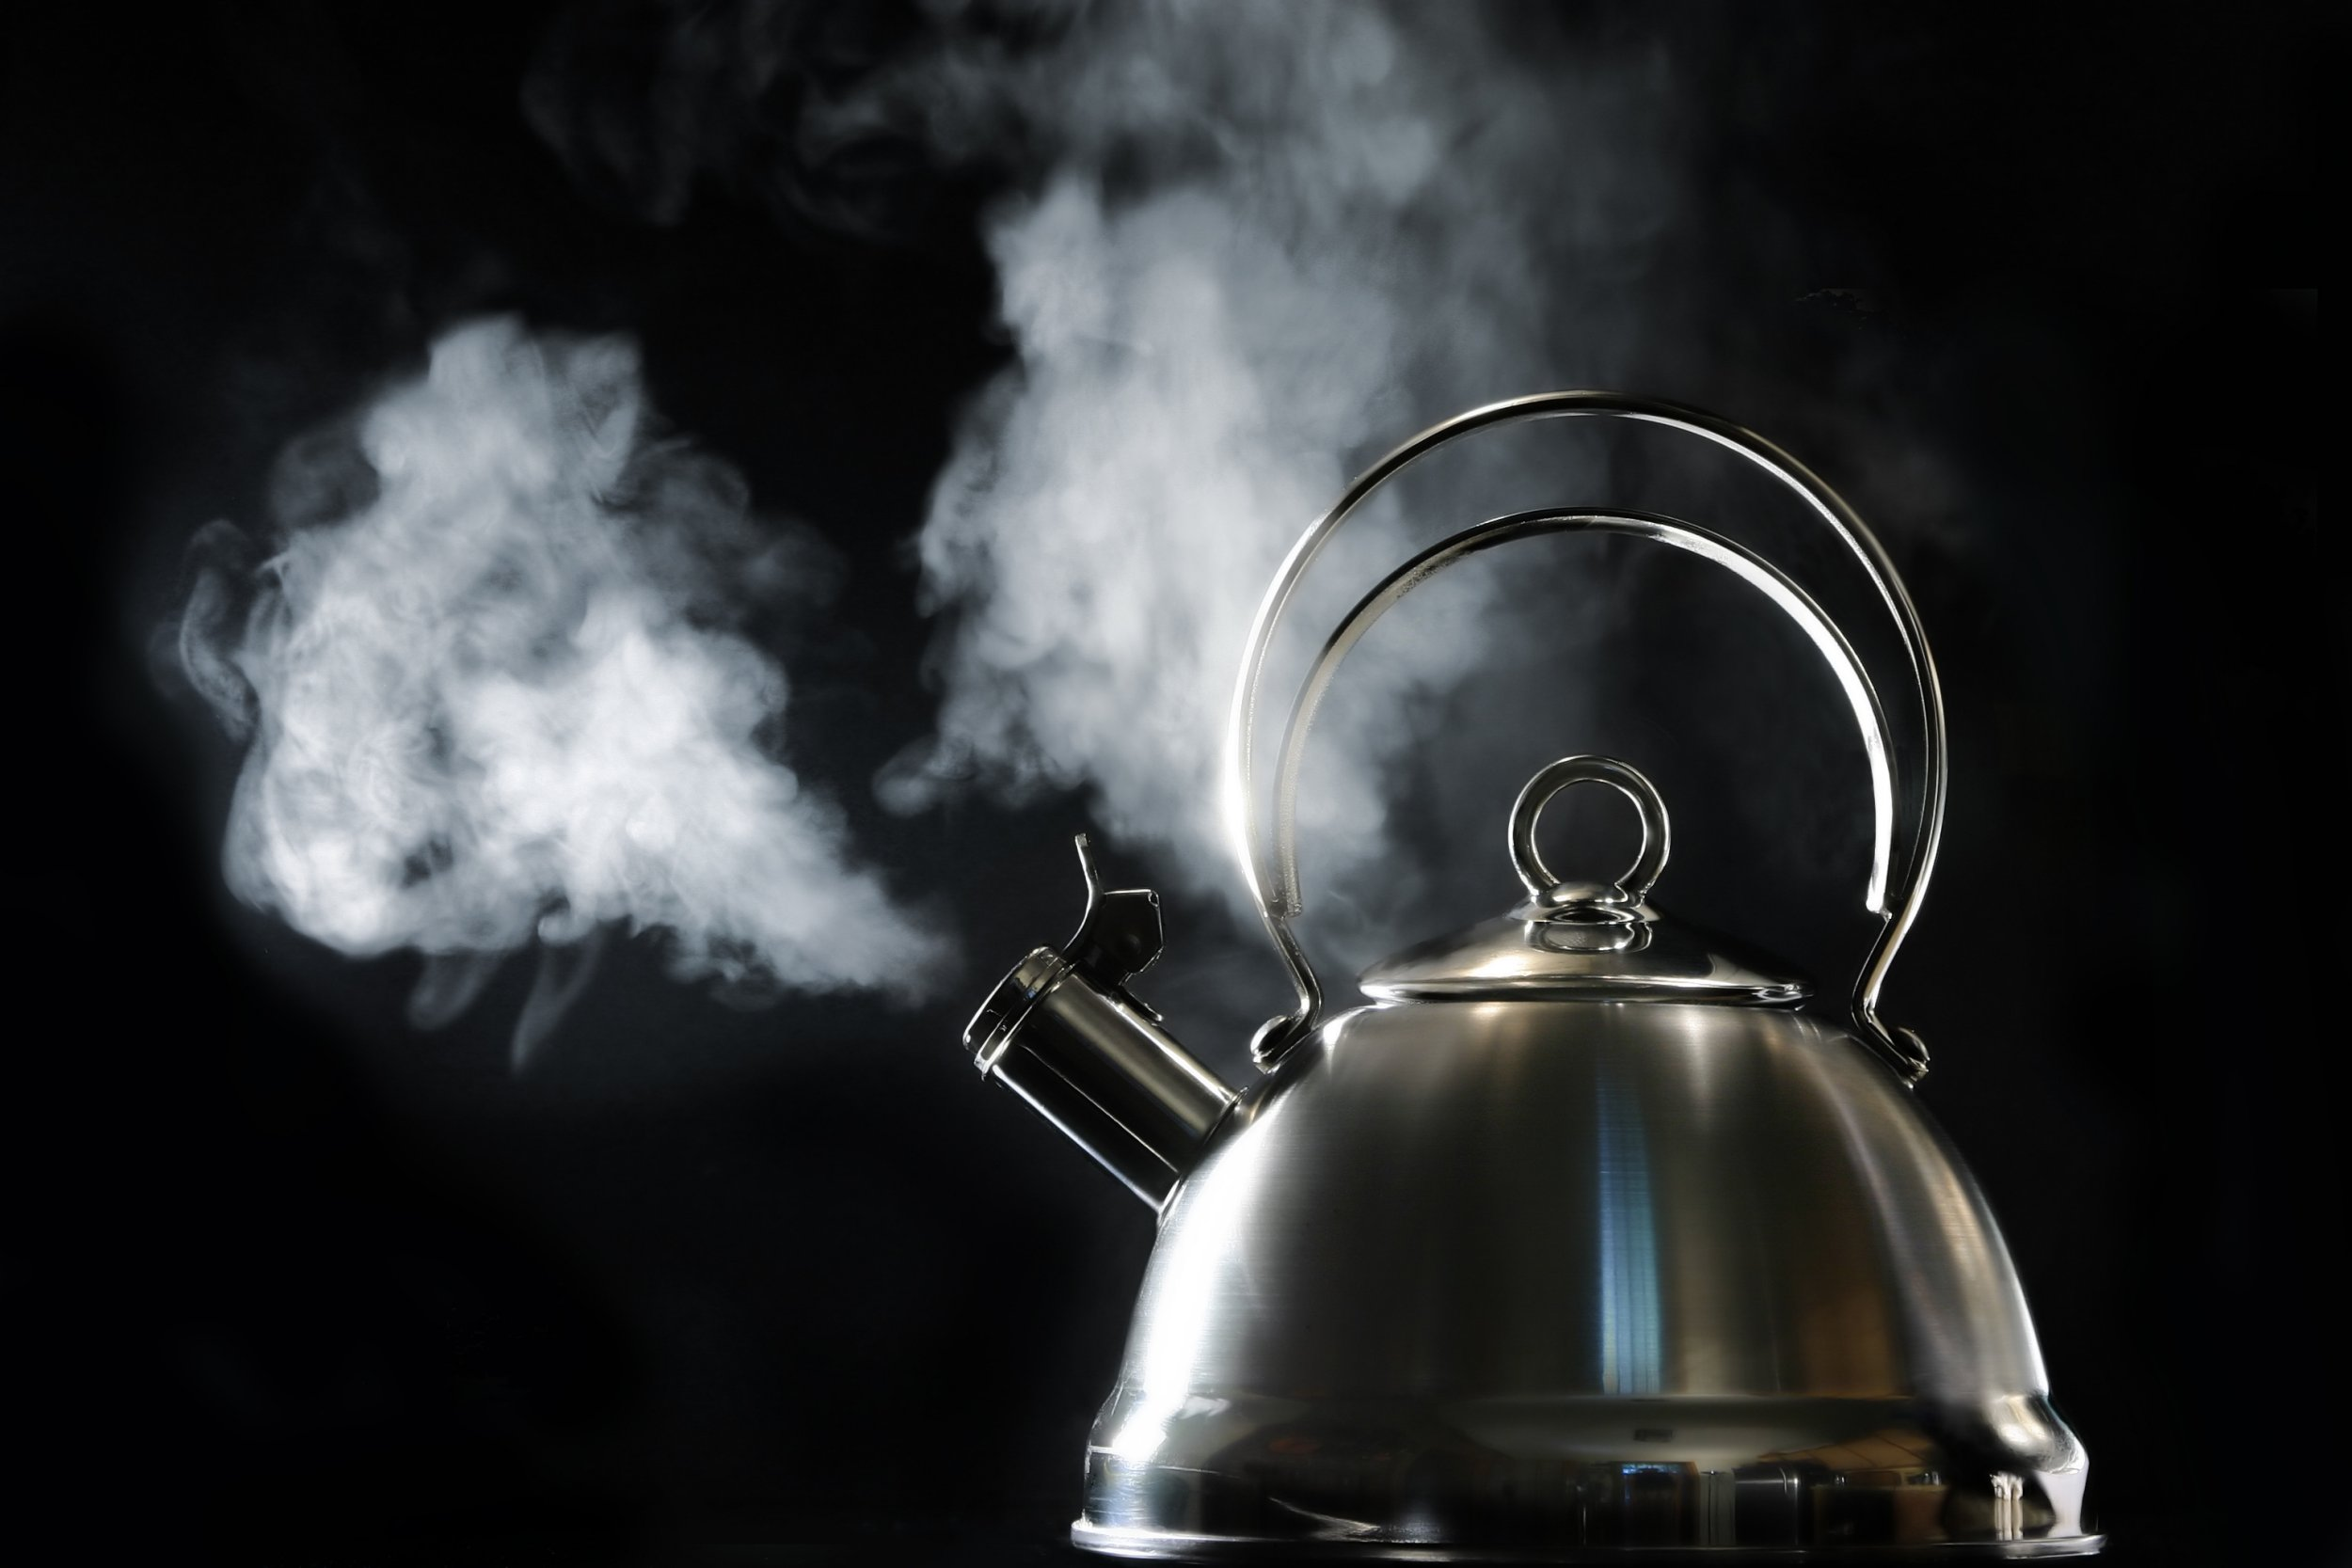 Hot kettle boiling and steaming.http://www.lisegagne.com/images/stilllife.jpg